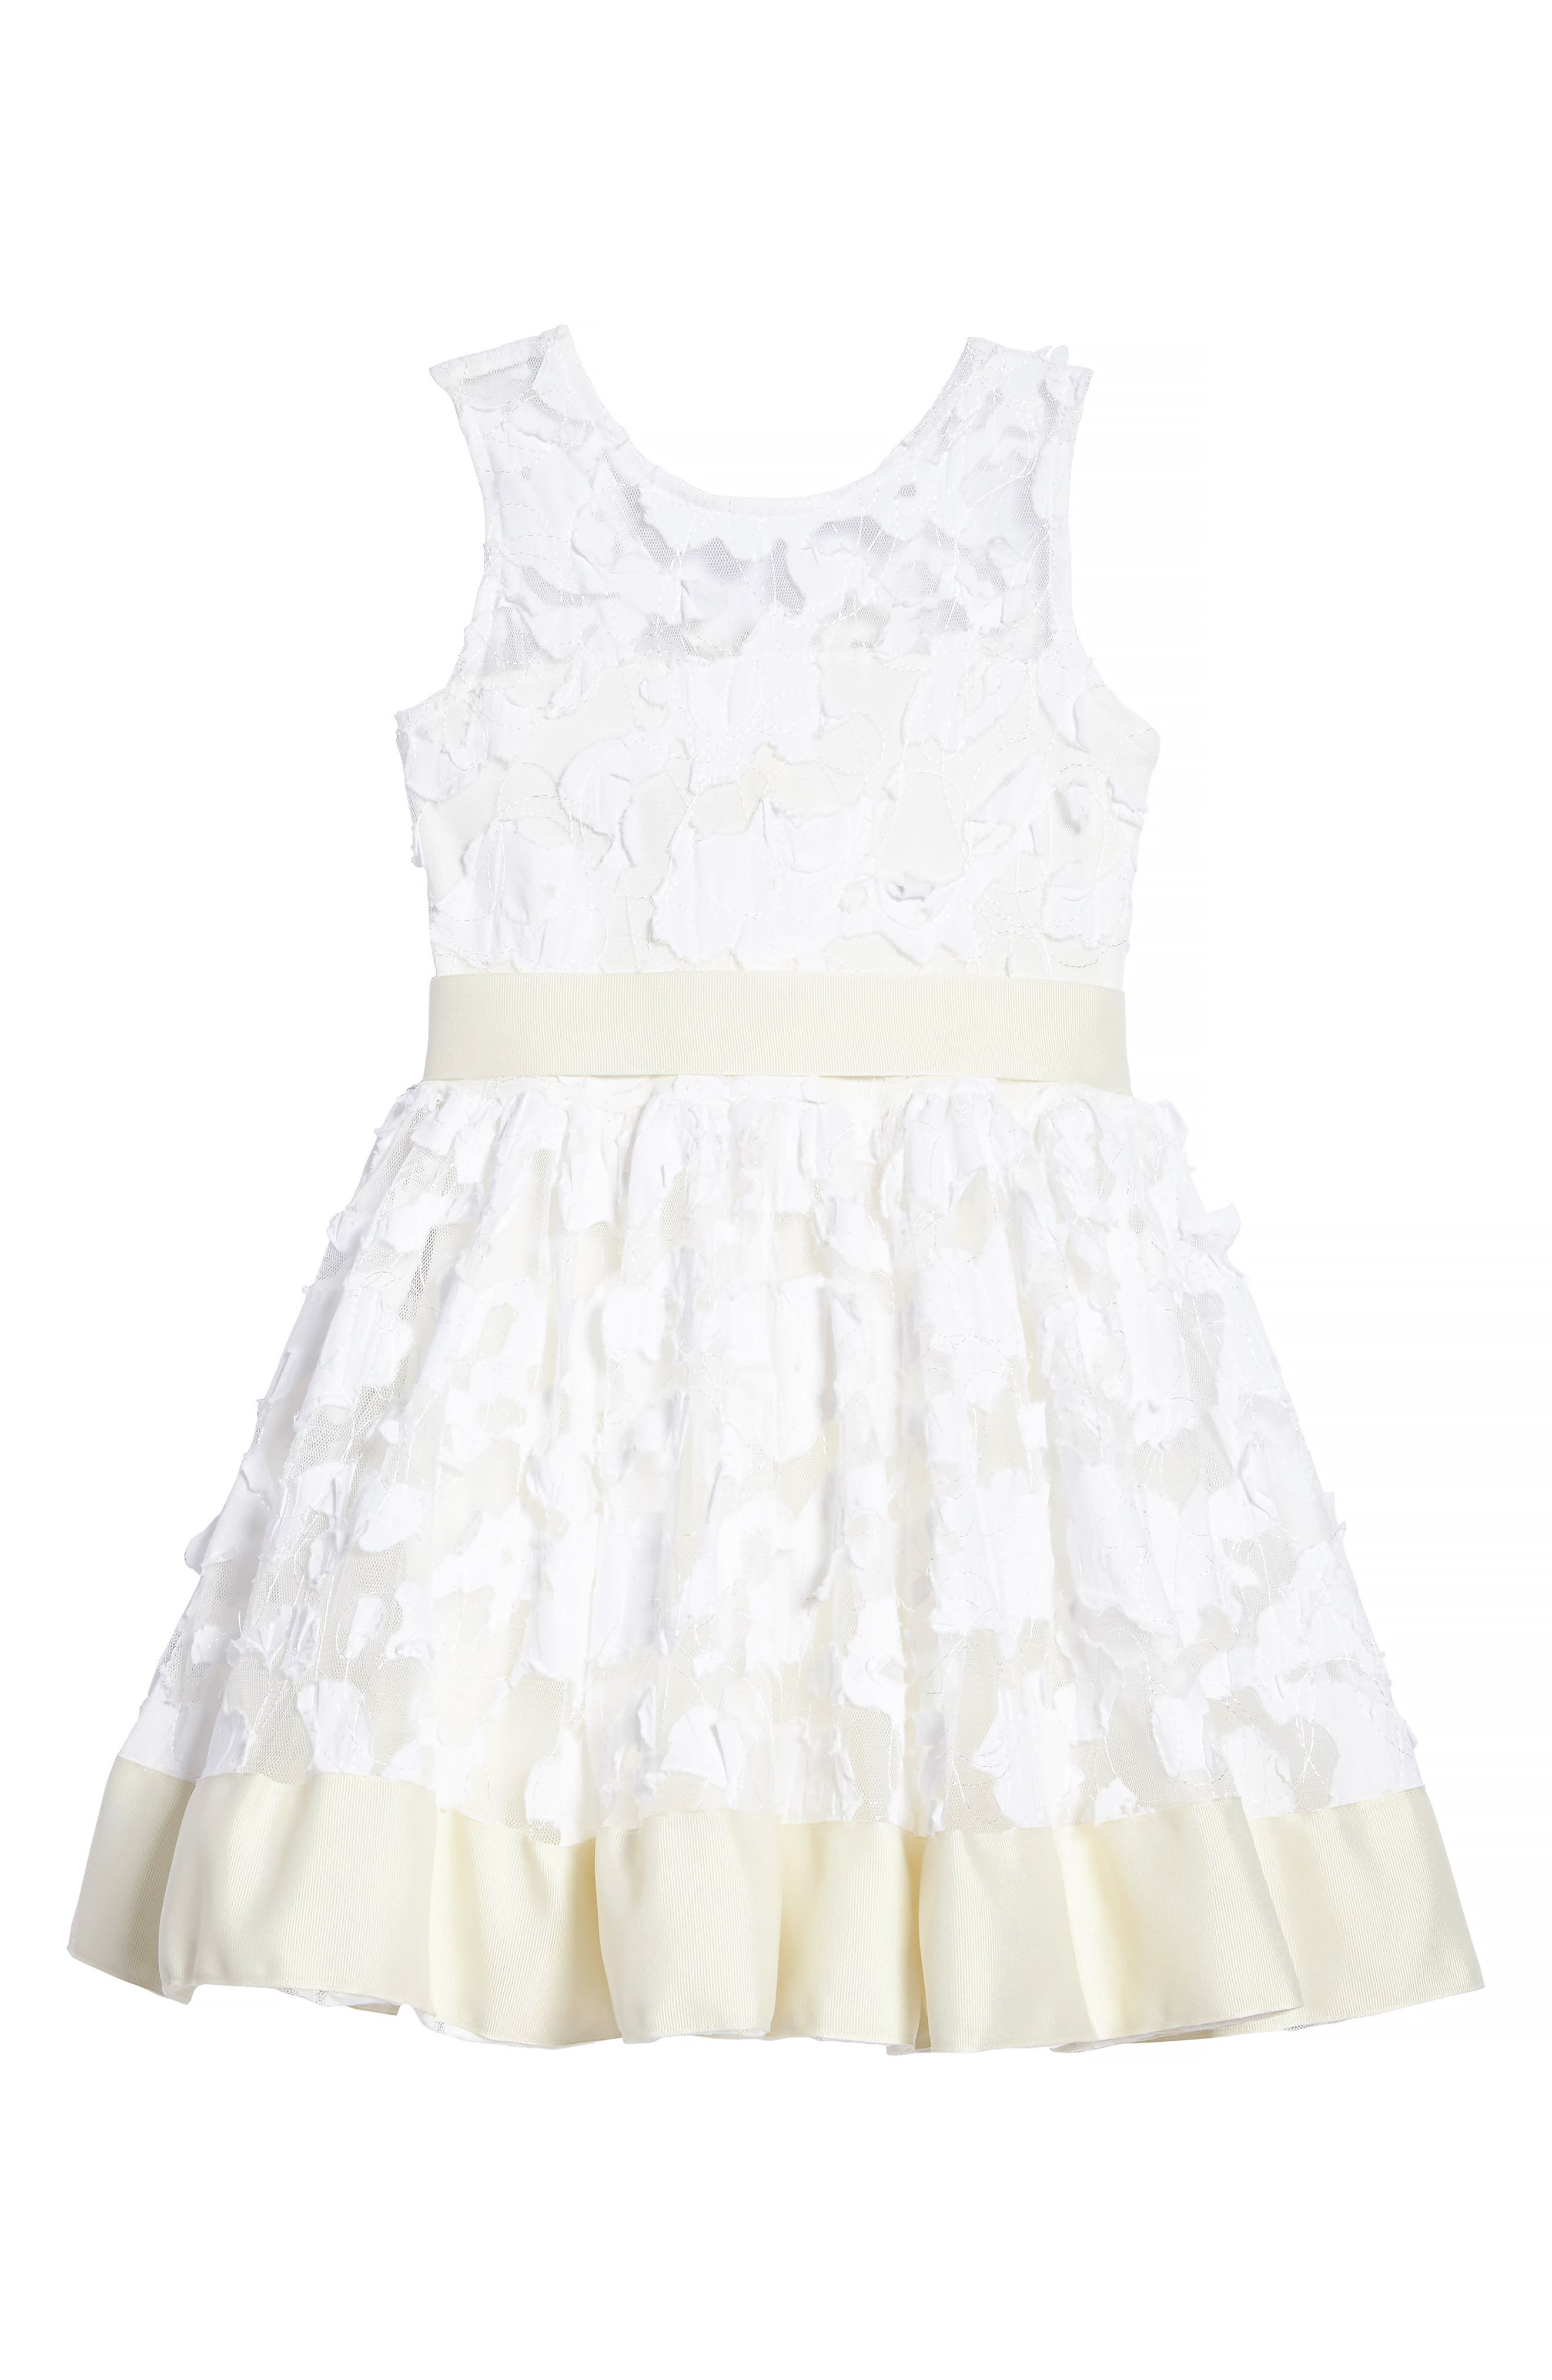 'Pretty in Ivory' Party Dress,                             Alternate thumbnail 2, color,